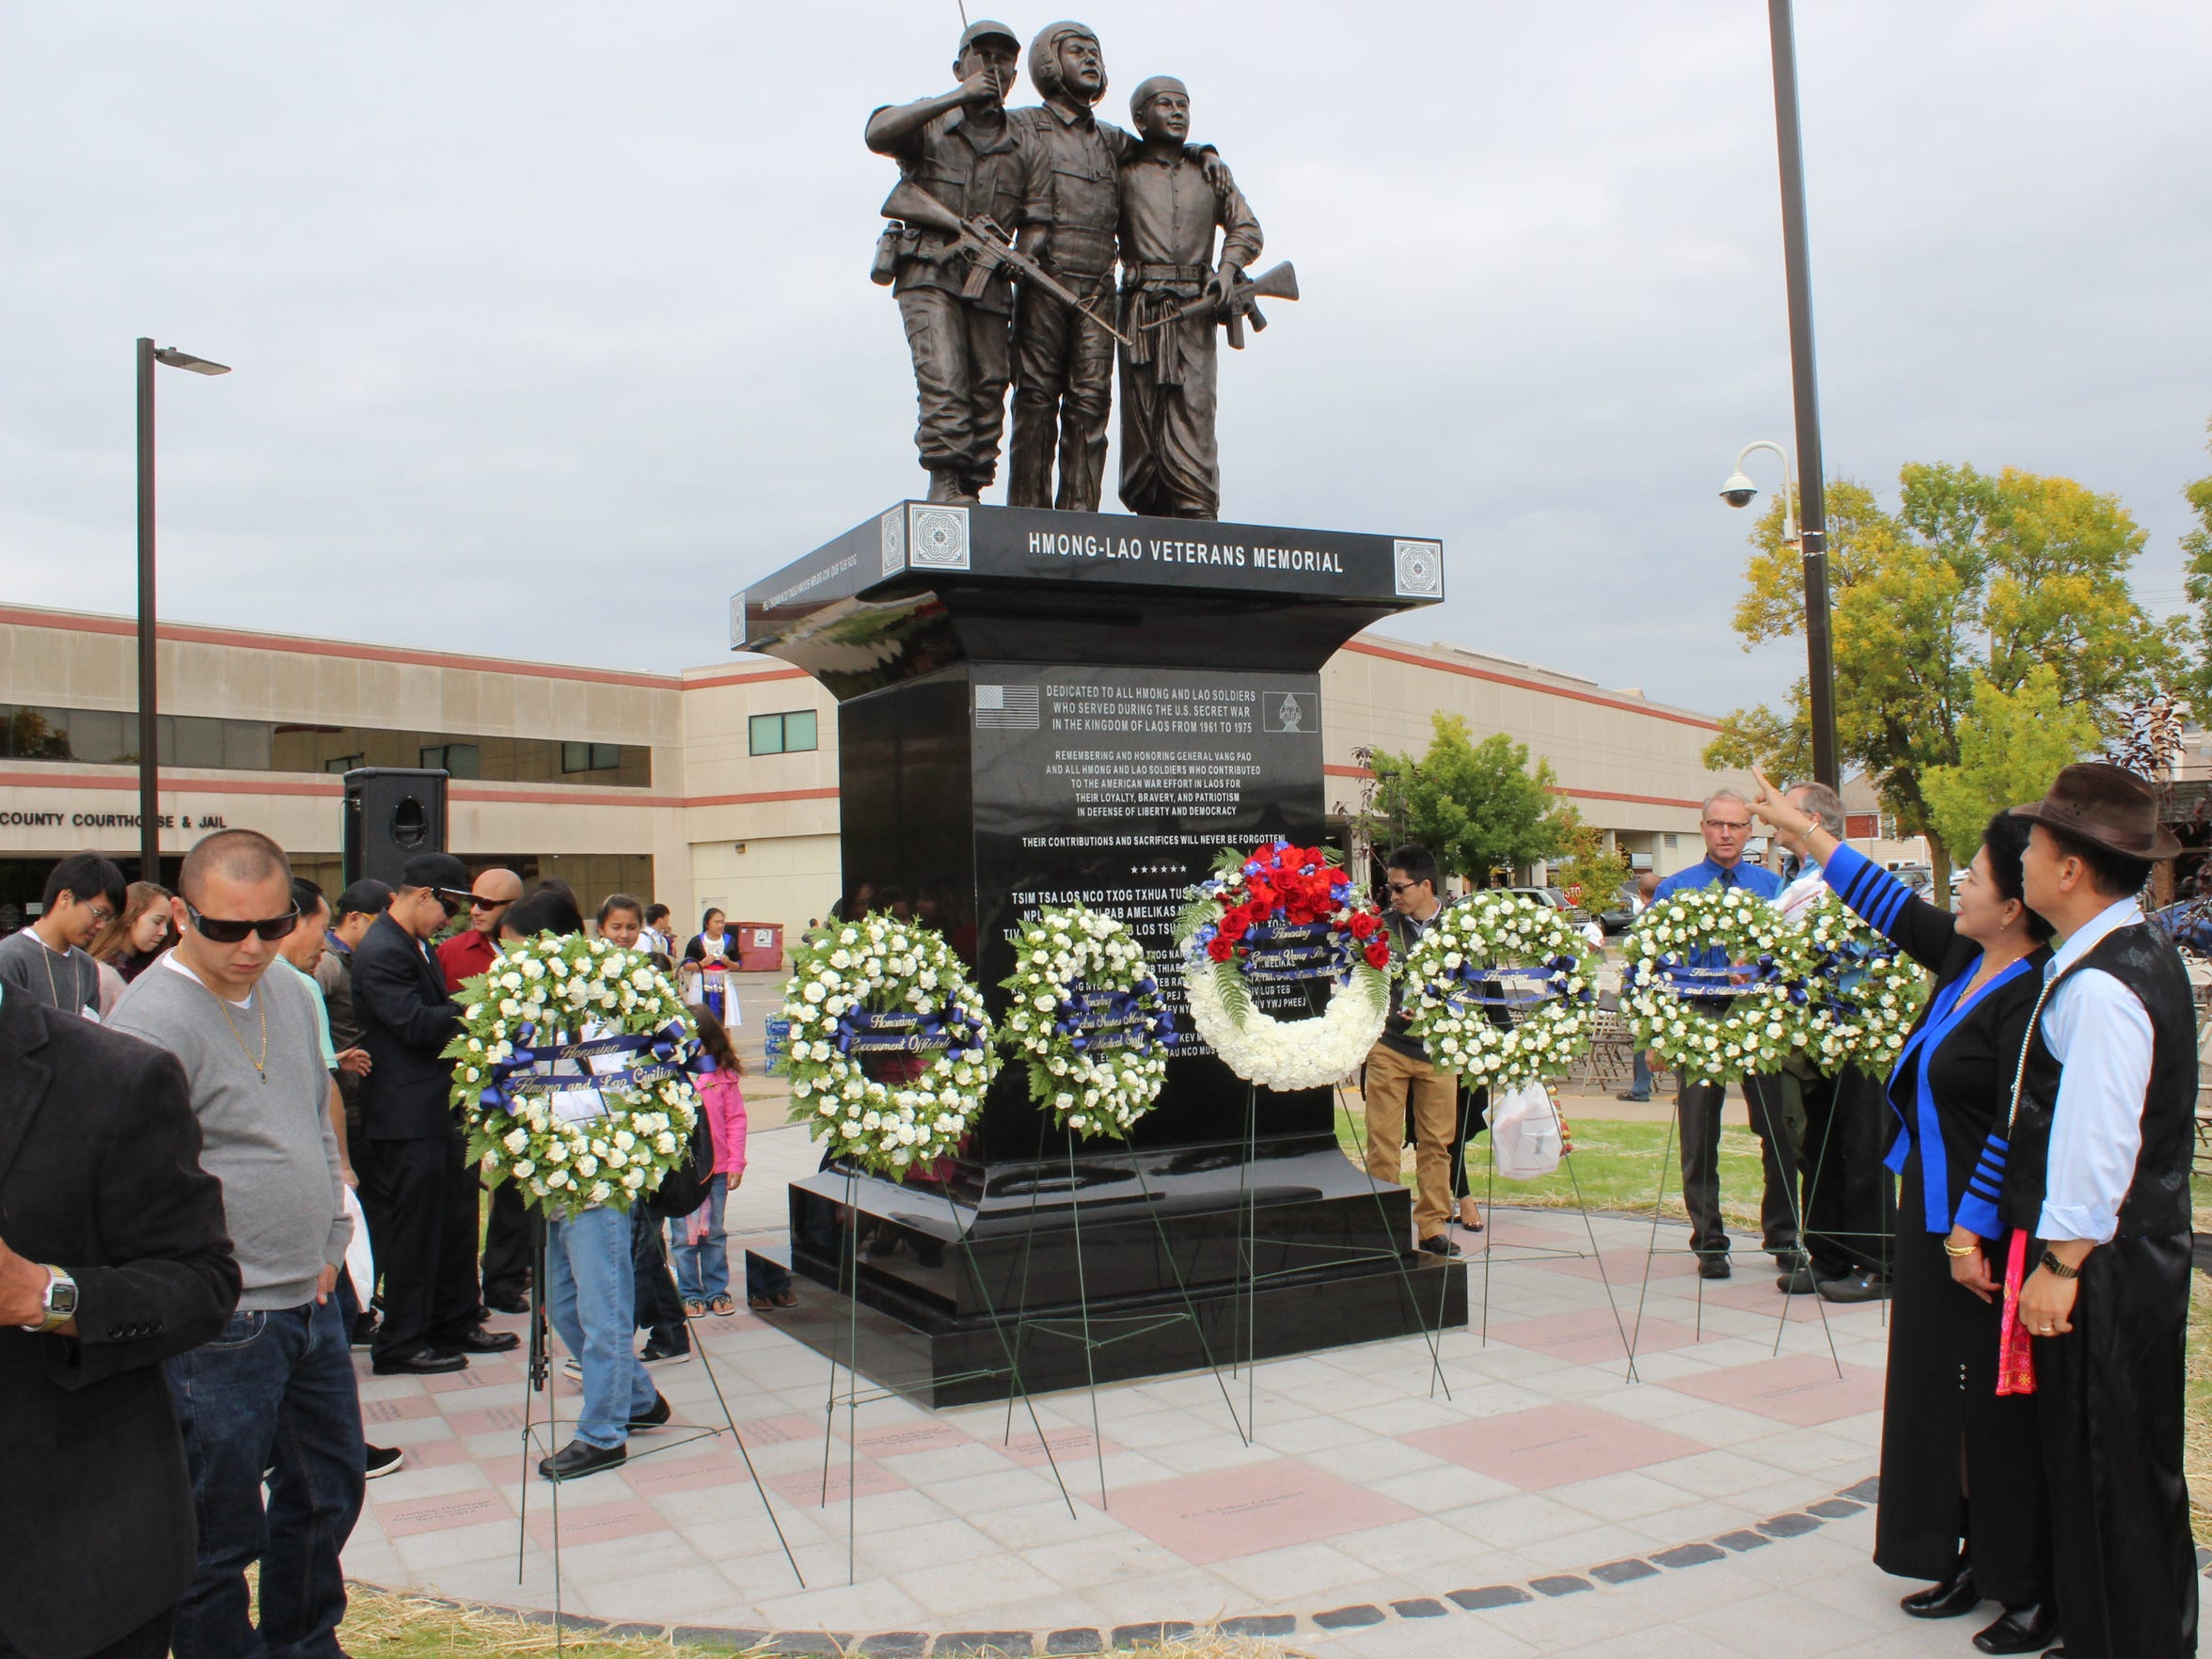 After the unveiling of the Hmong Vietnam War Veterans